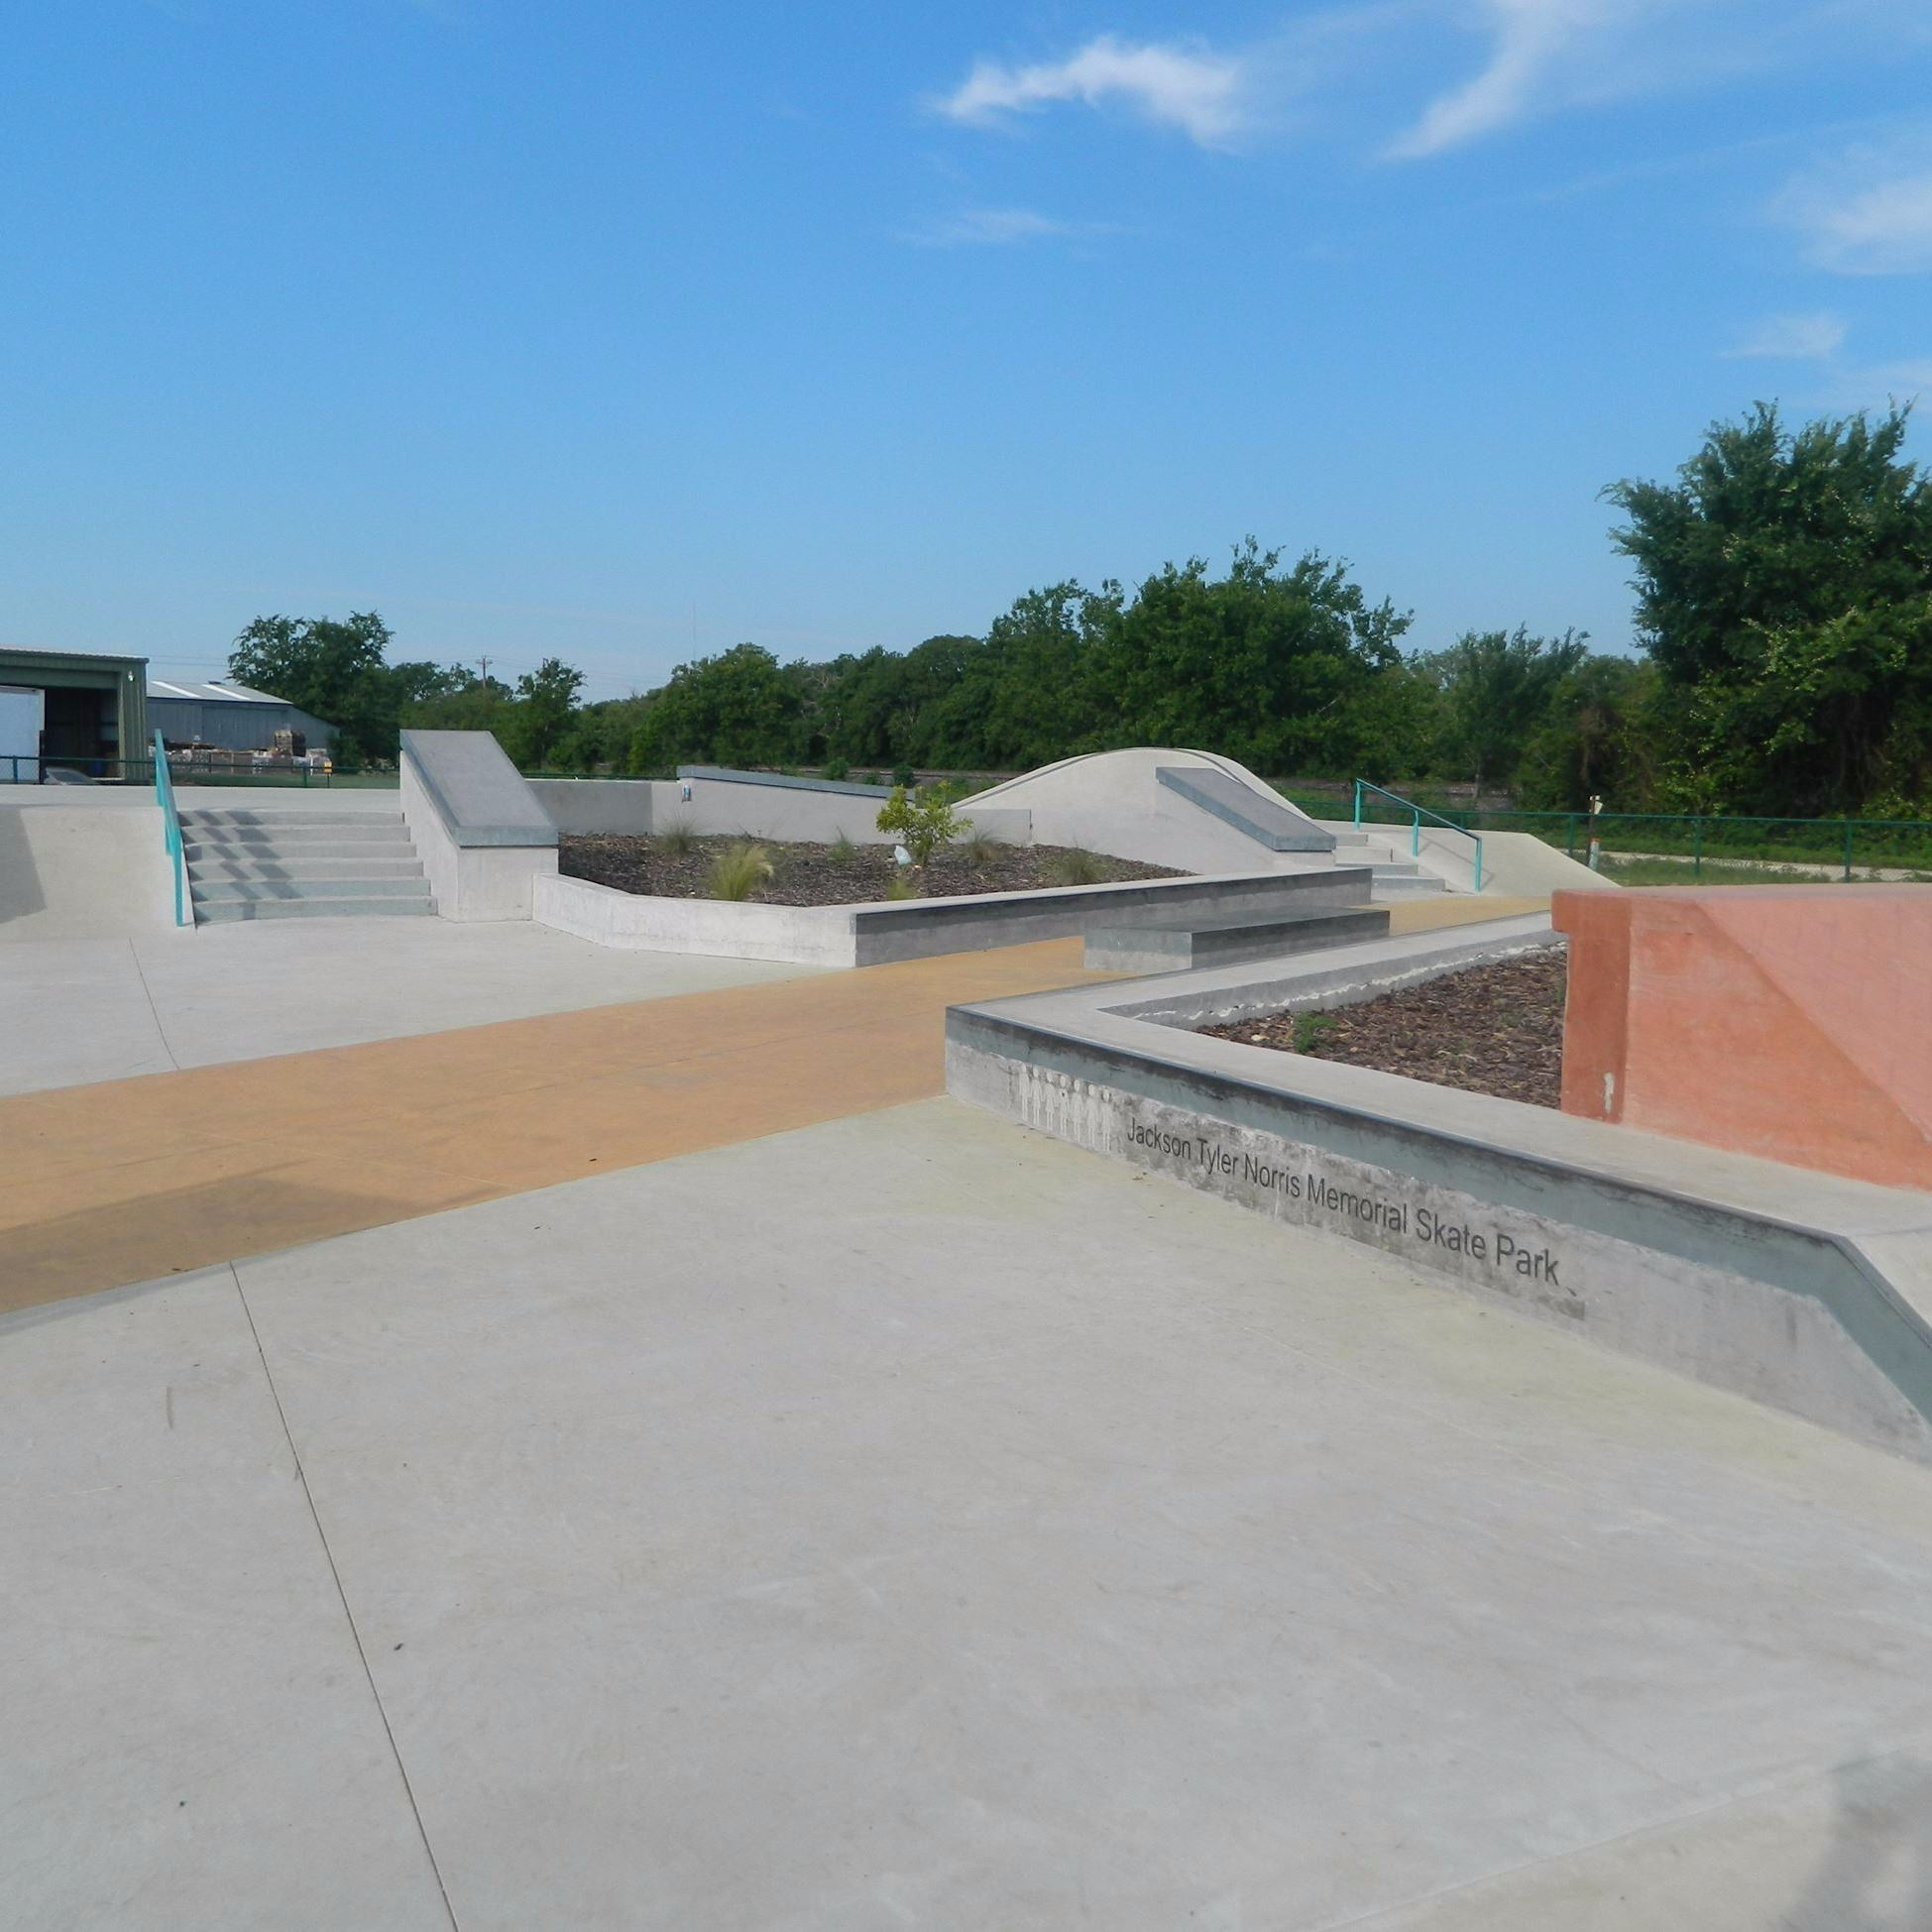 Skate park view from grinding rails